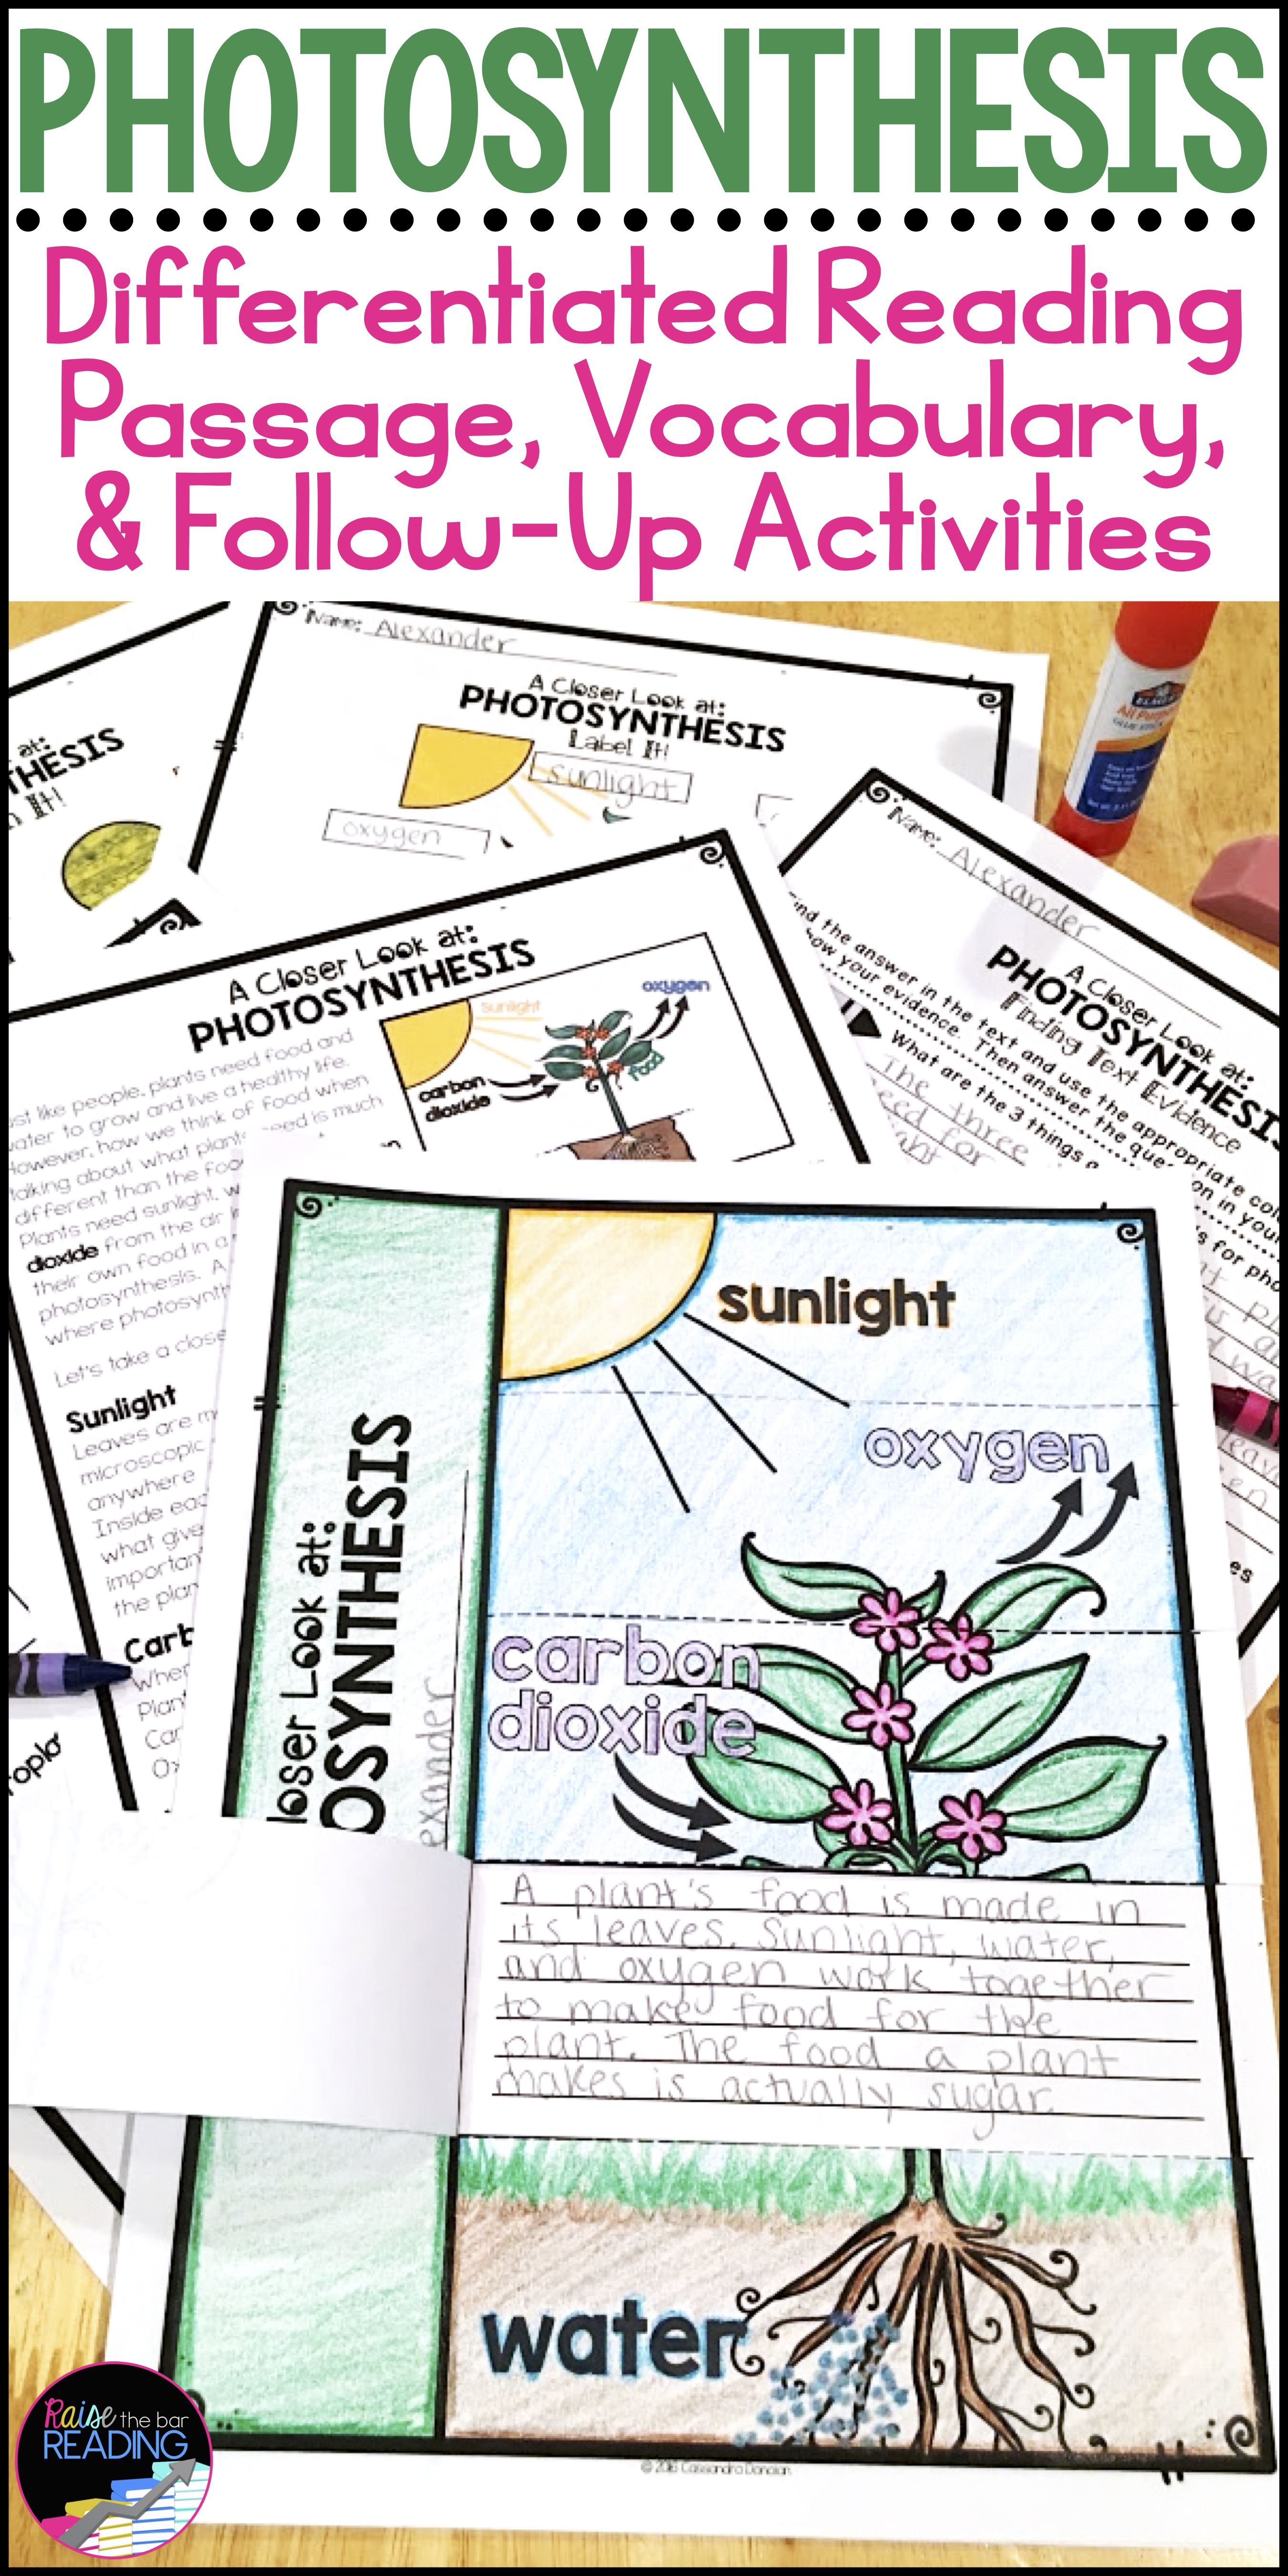 Differentiated Photosynthesis Reading Passage & Activities